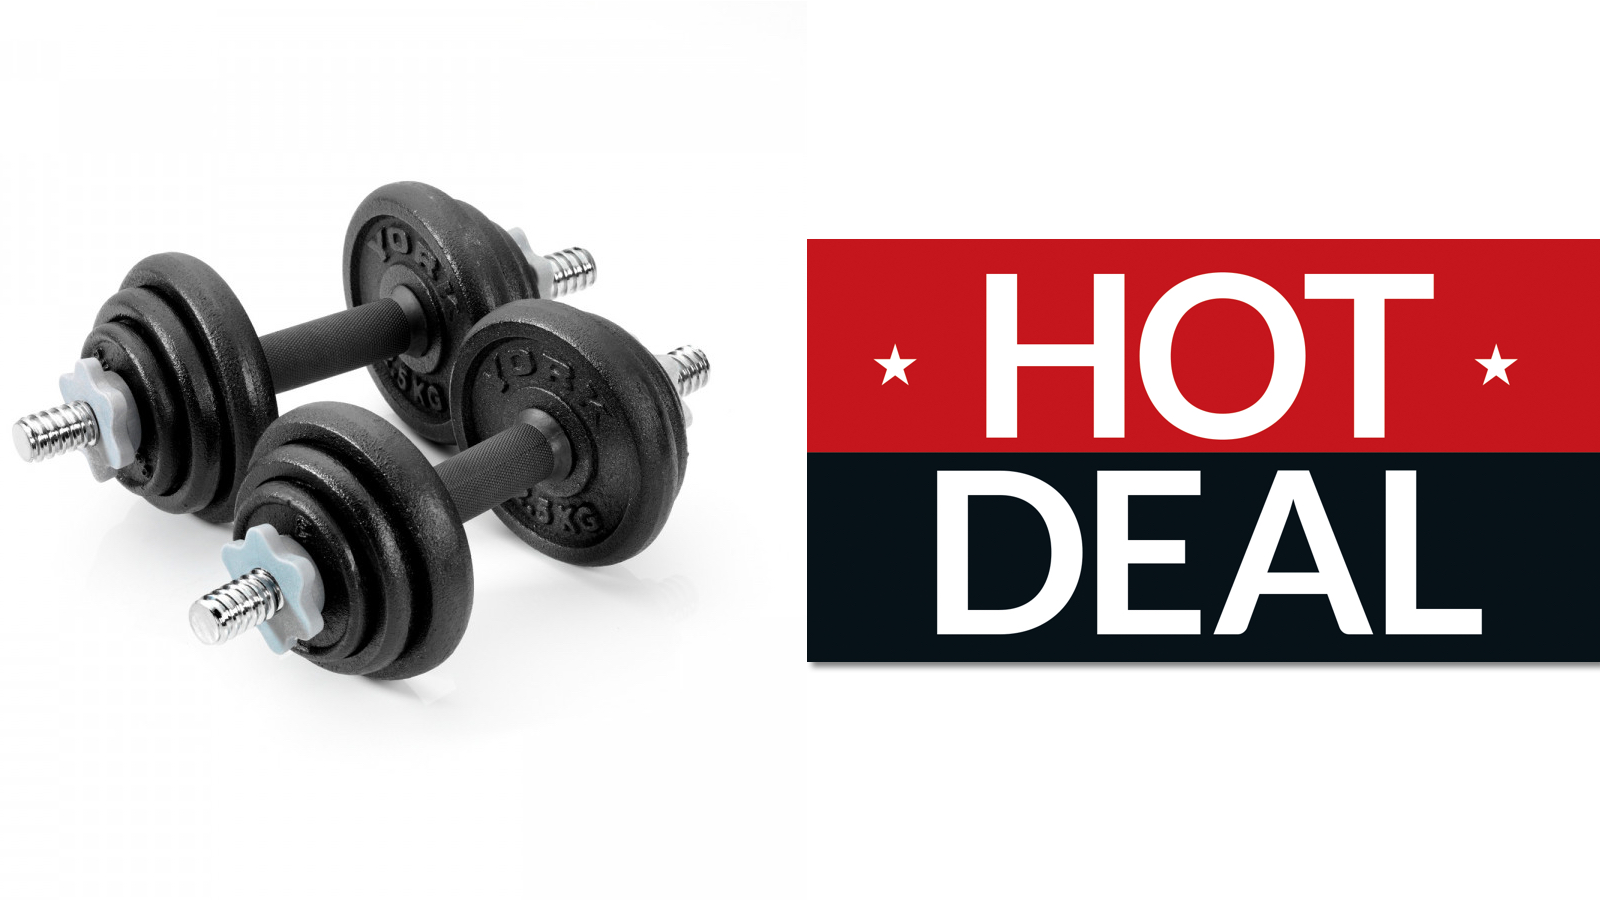 últimos lanzamientos color rápido comprar popular Dumbbell weight set deal discovered! Available to buy NOW, snap up ...